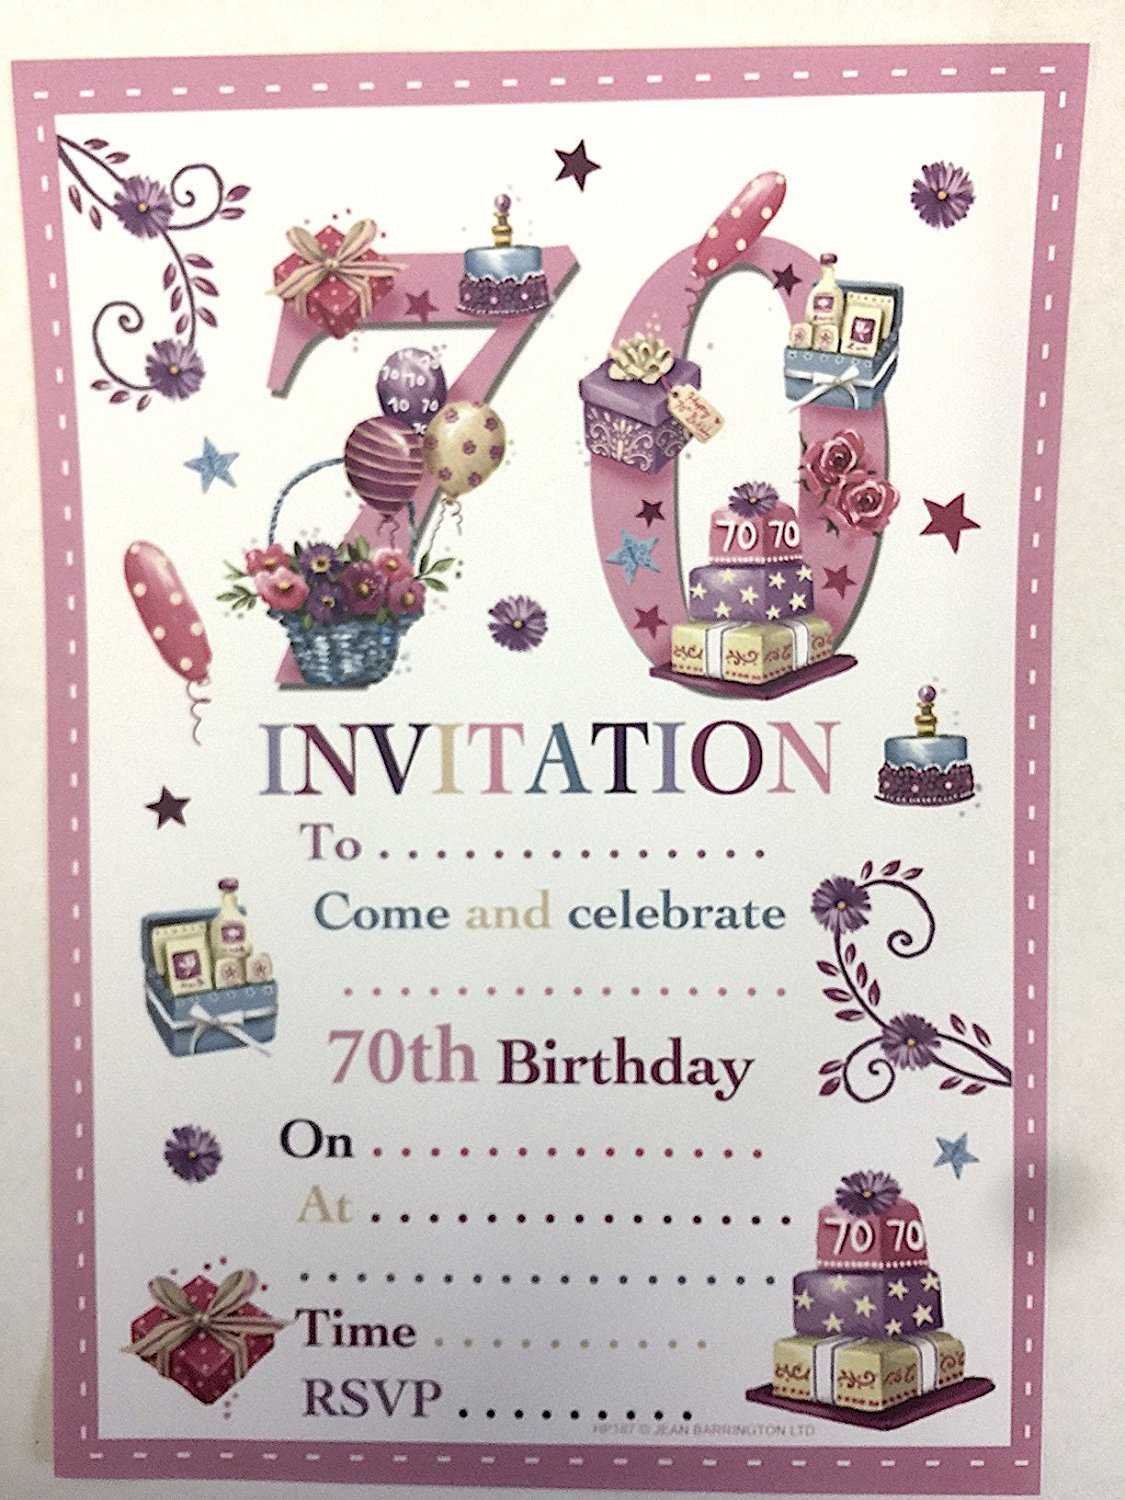 70th Birthday Party Invitations Female Design 20 Sheets And Envelopes Amazoncouk Toys Games